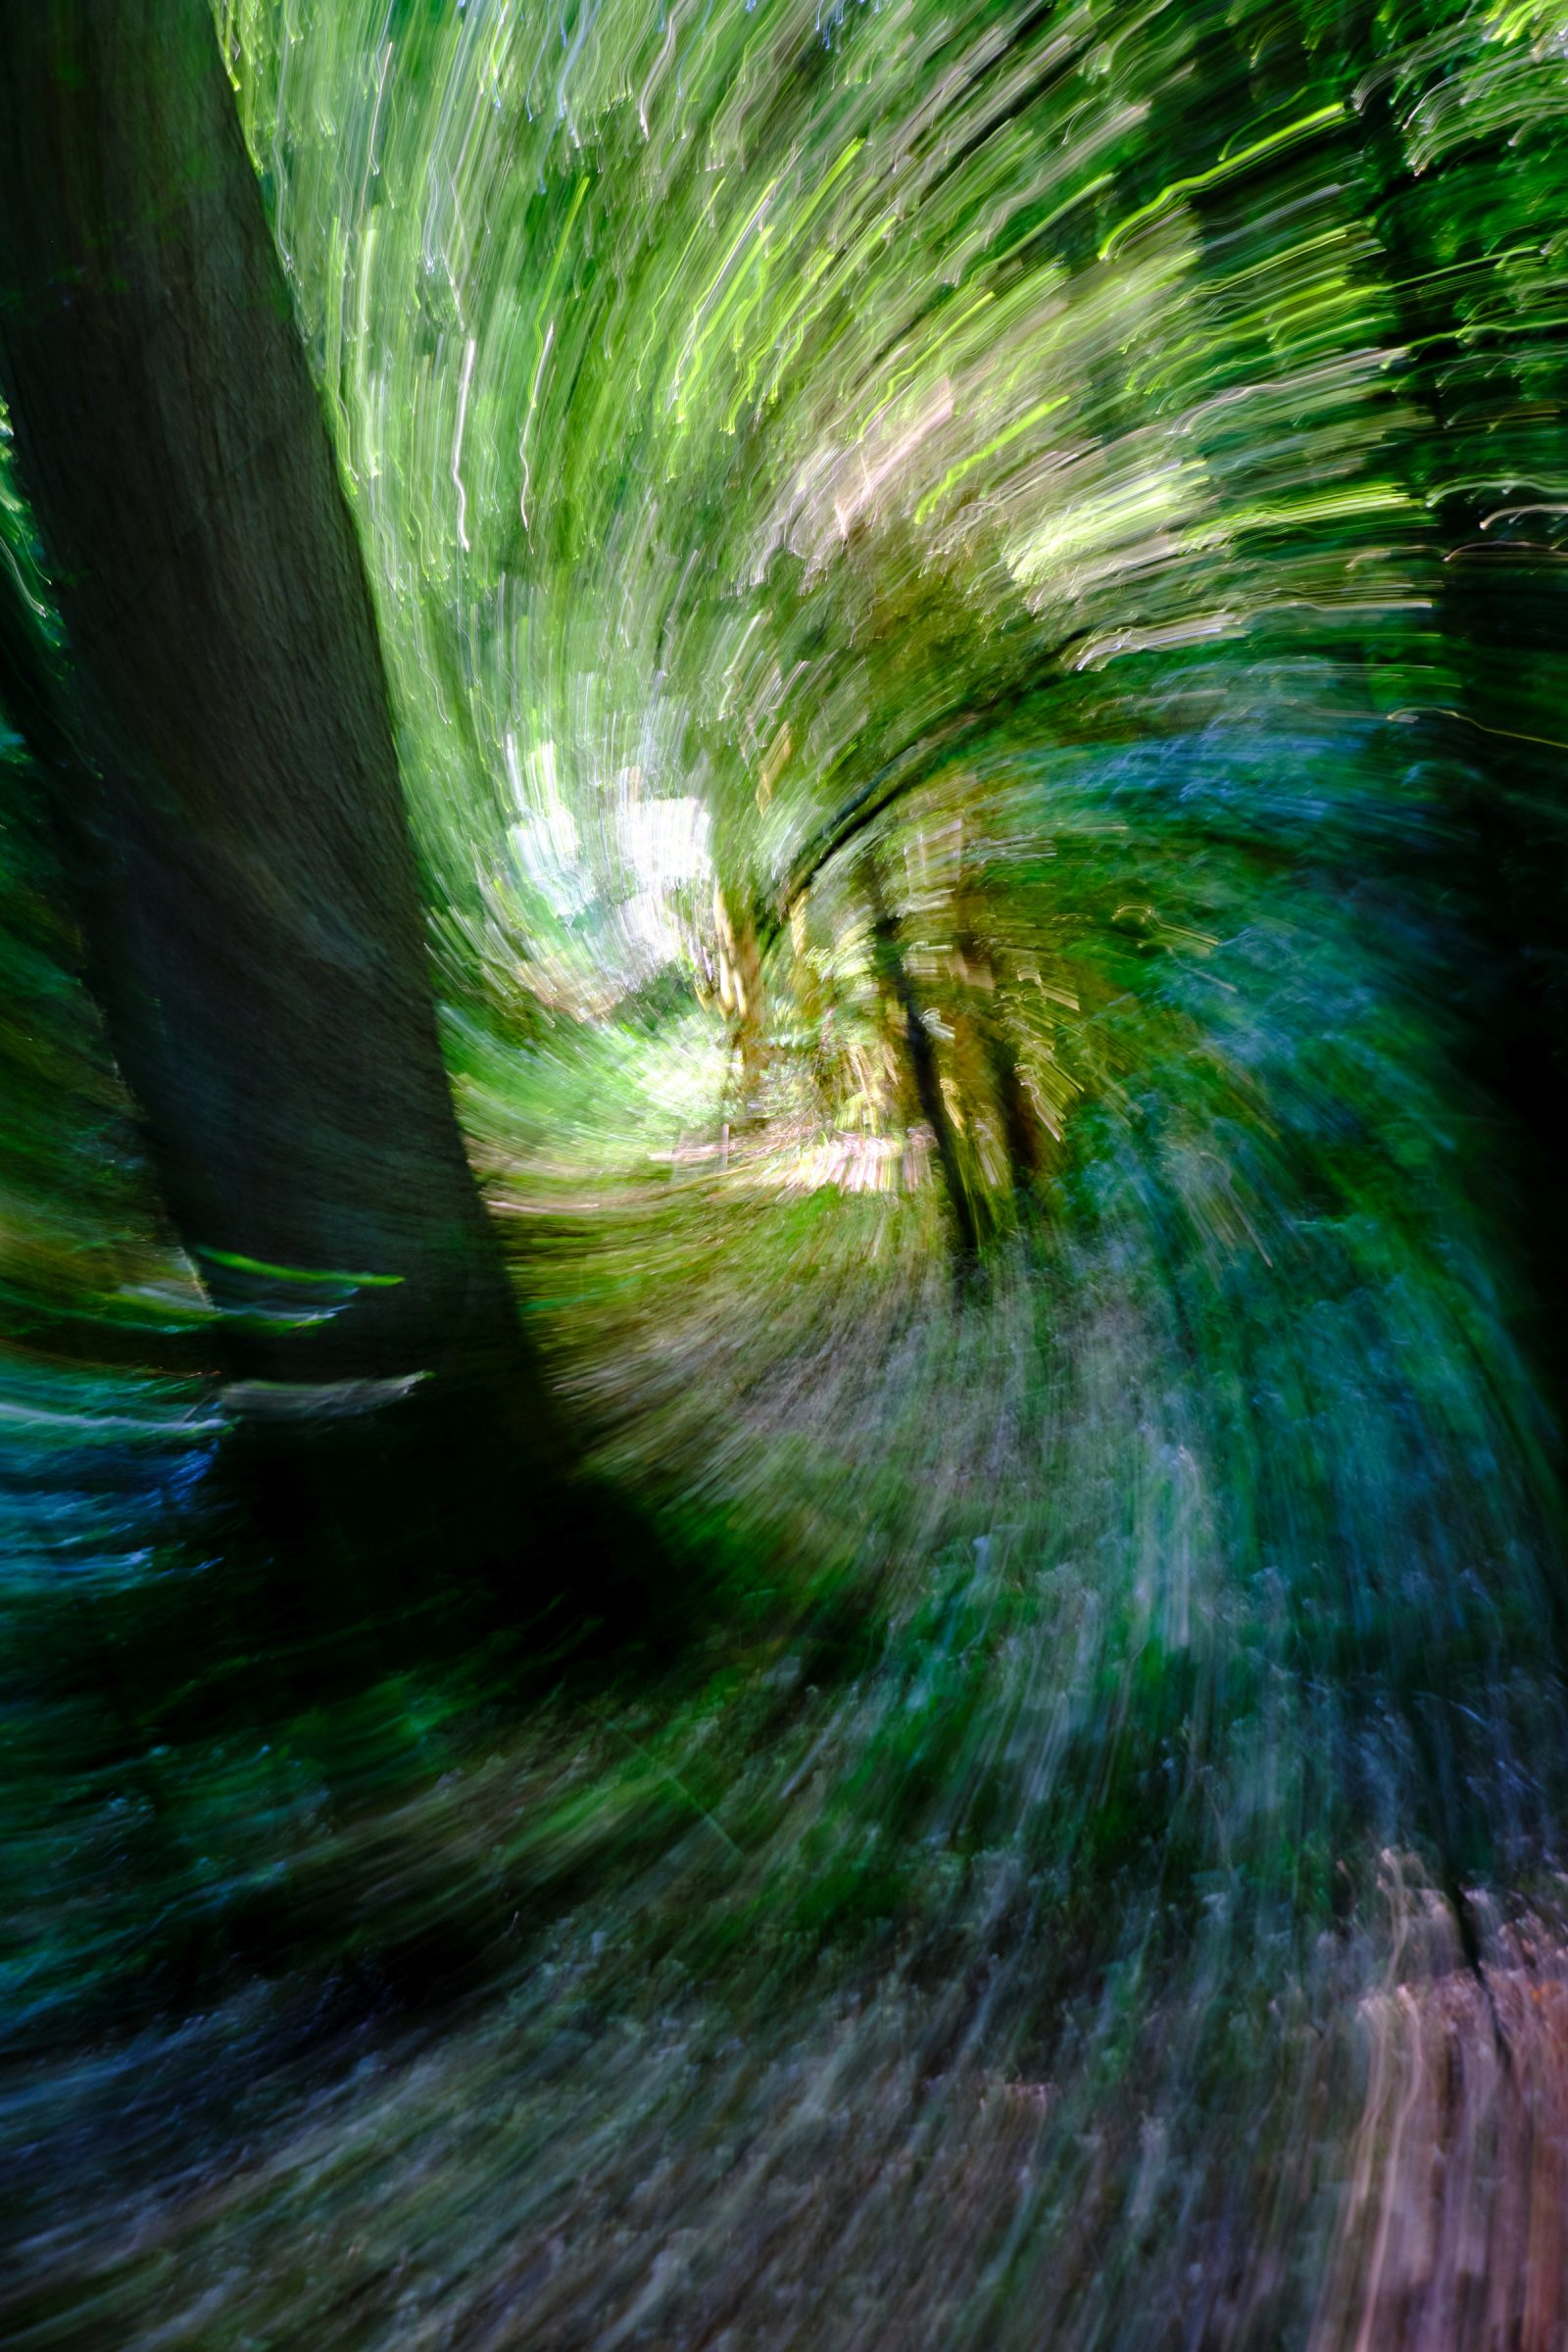 Whirlwind forest